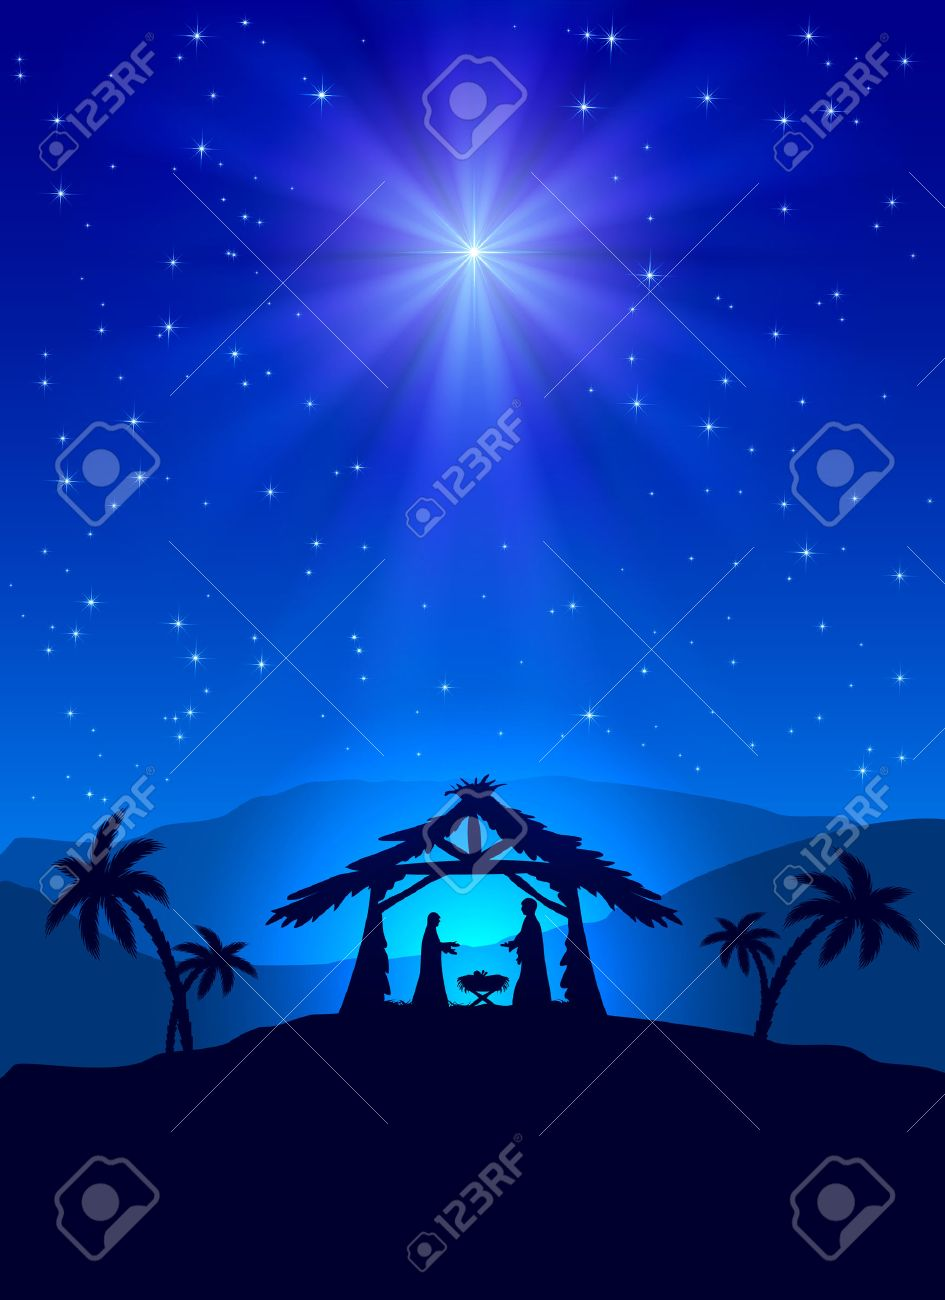 3,311 Nativity Scene Stock Vector Illustration And Royalty Free ...